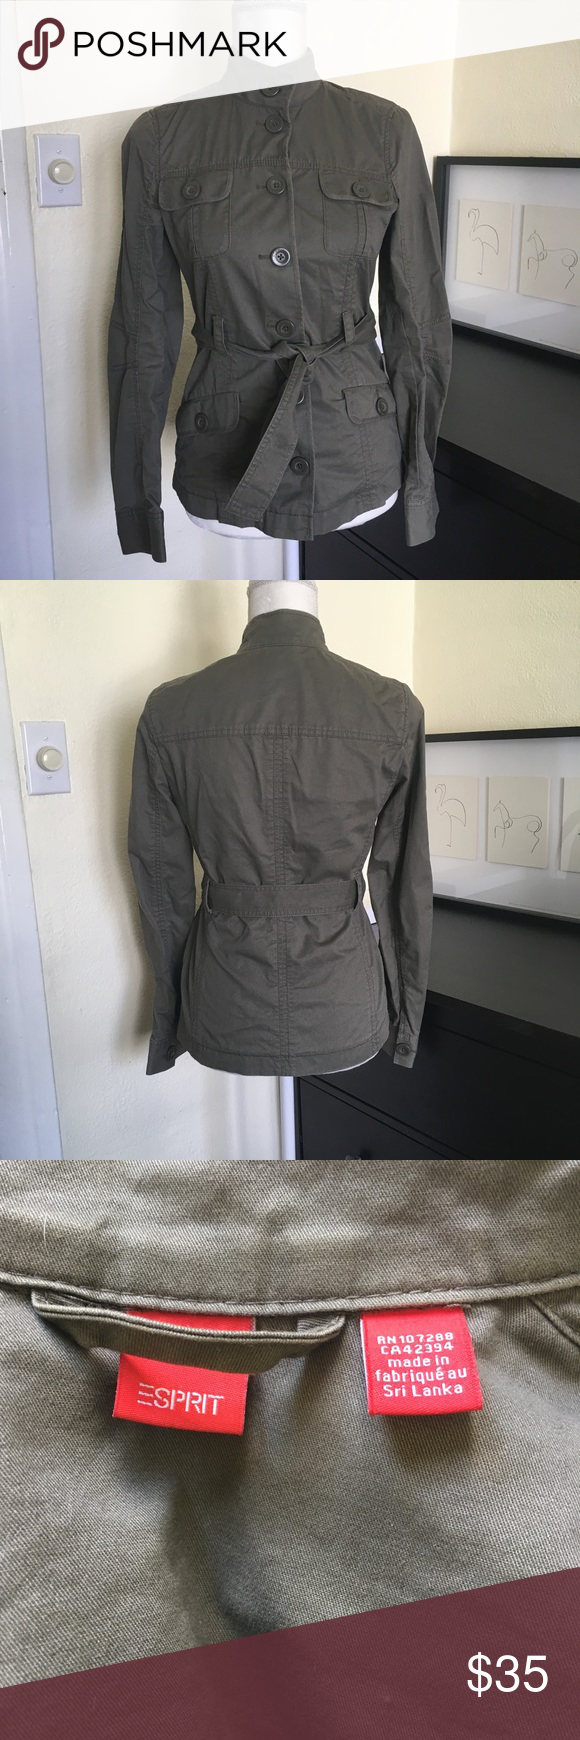 Esprit Army Style Jacket Nwot Army Fashion Clothes Design Jackets [ 1740 x 580 Pixel ]